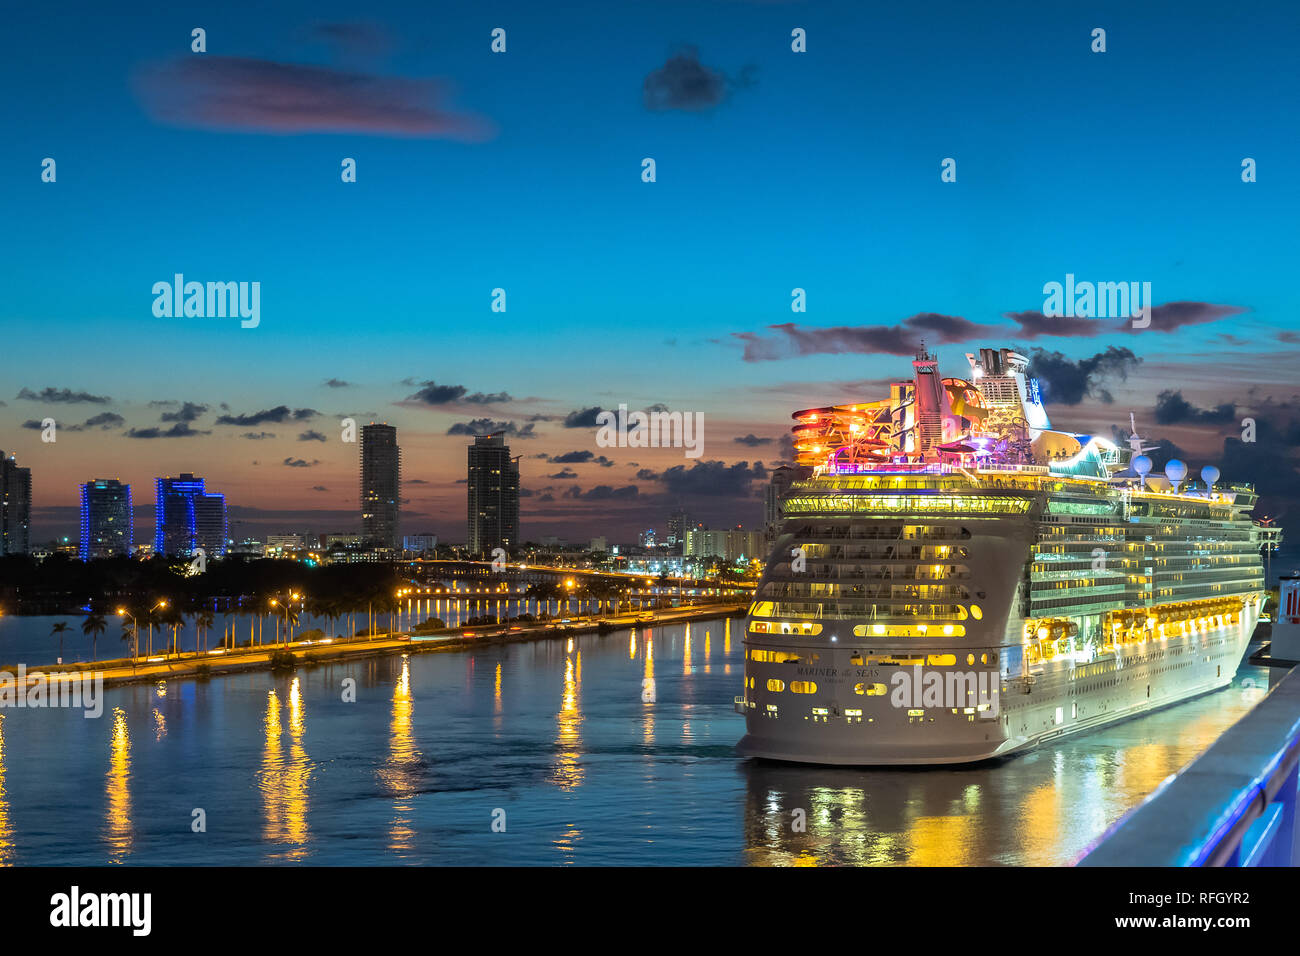 Miami, Florida - November 19 2018: Royal Caribbean Cruise Line Mariner Of The Seas Cruise Ship sailing in the Port of Miami at sunrise with skyline of - Stock Image